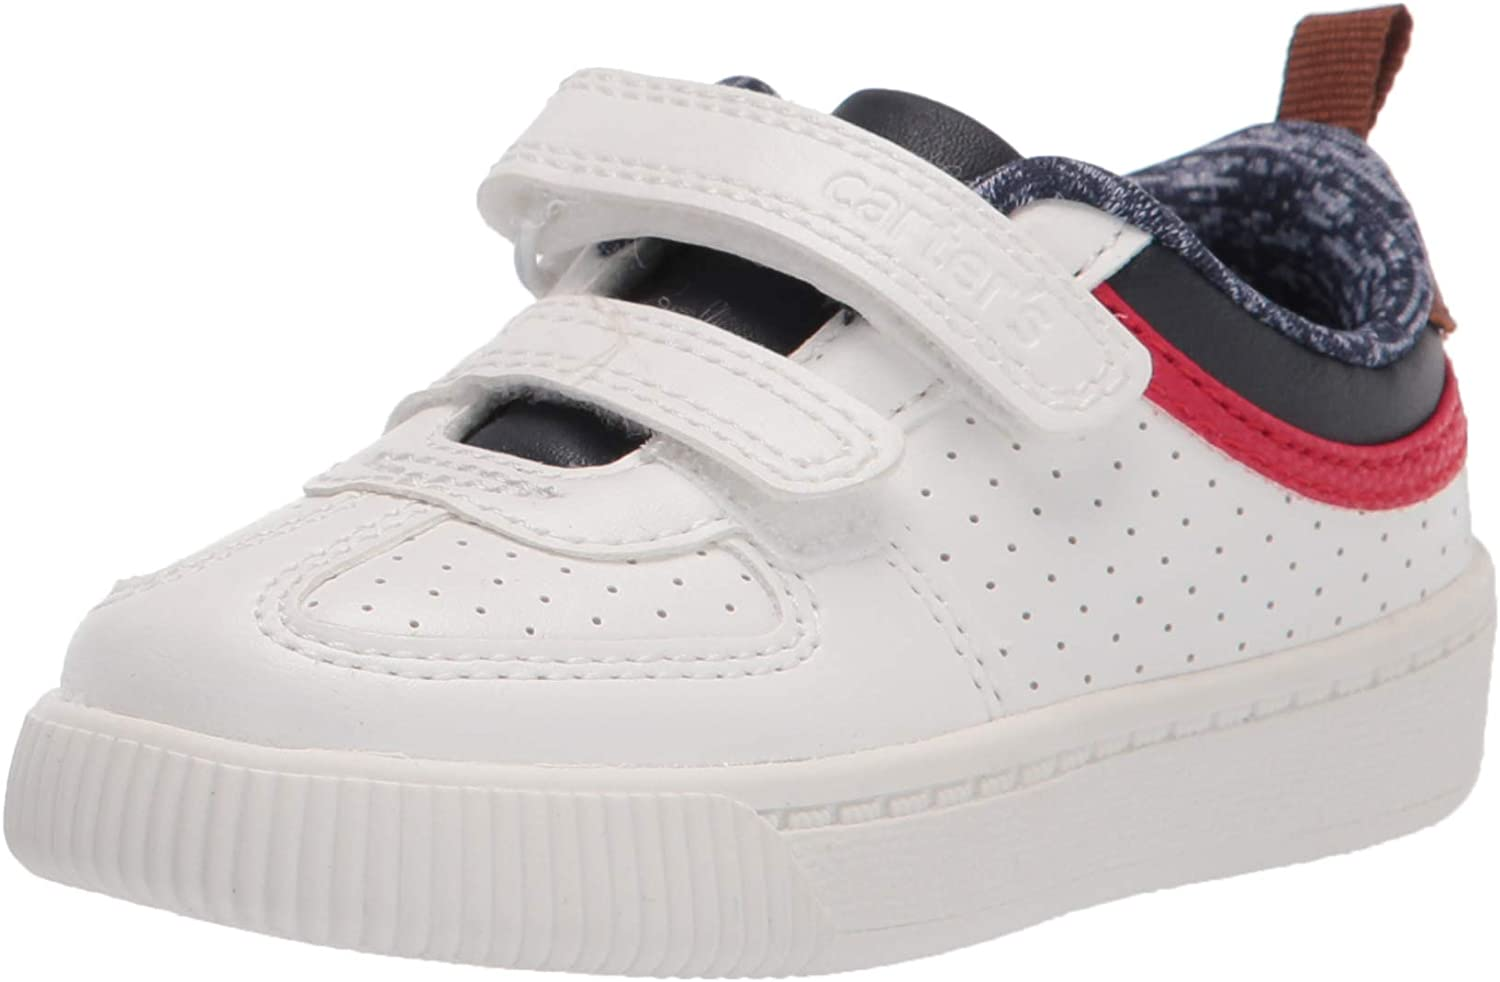 Carter's Unisex-Child Sneaker Sales for sale ! Super beauty product restock quality top! Devin